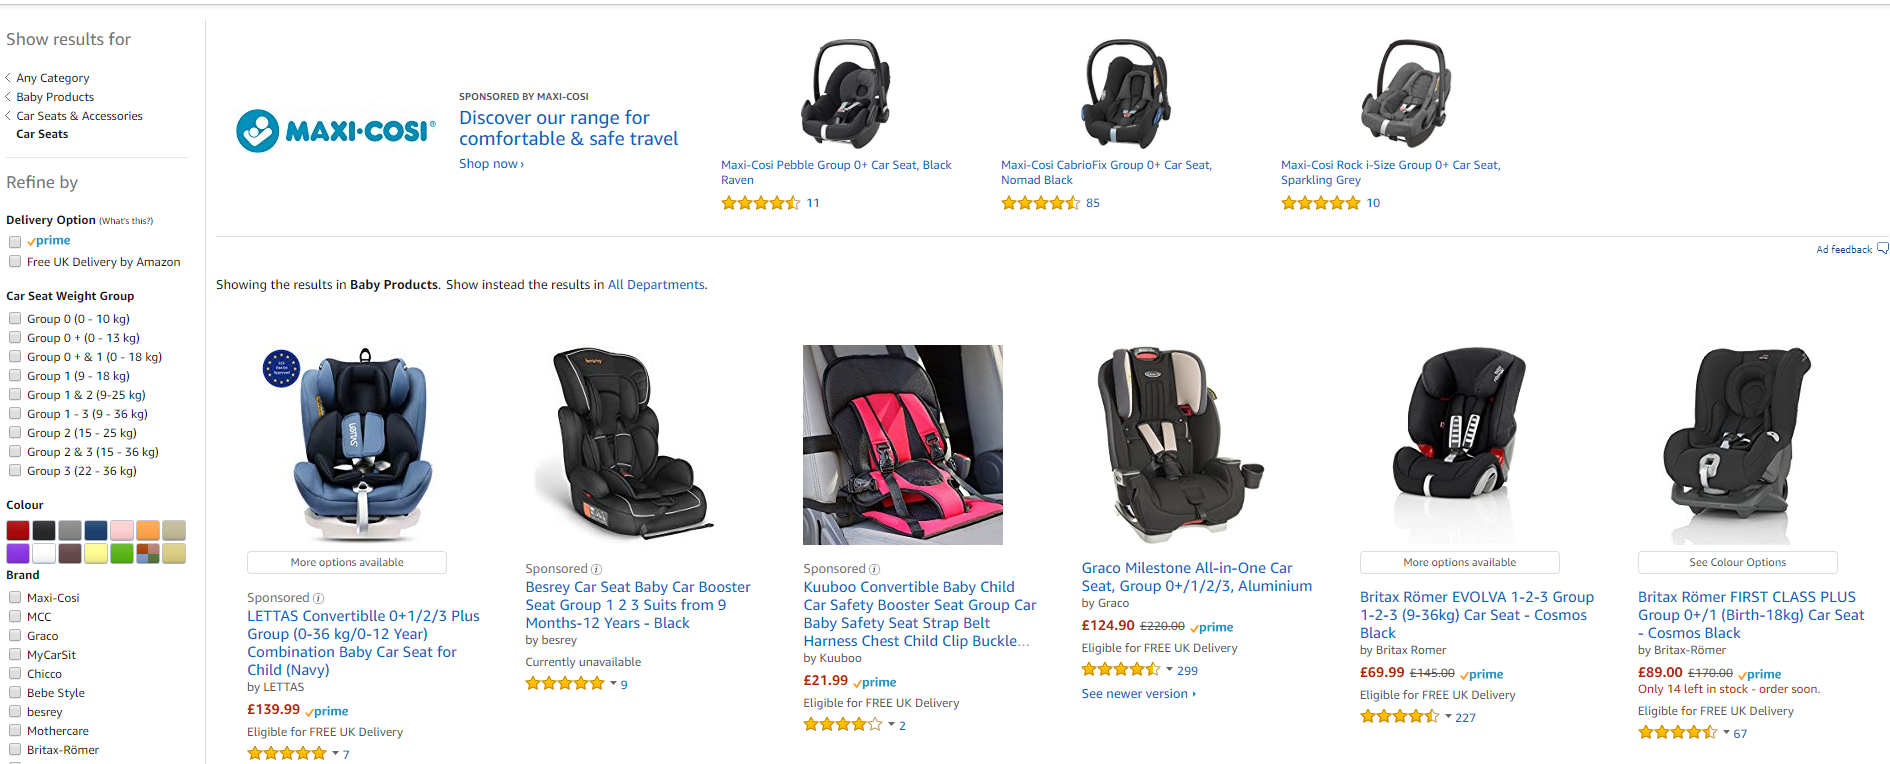 Amazon Products Results Ads